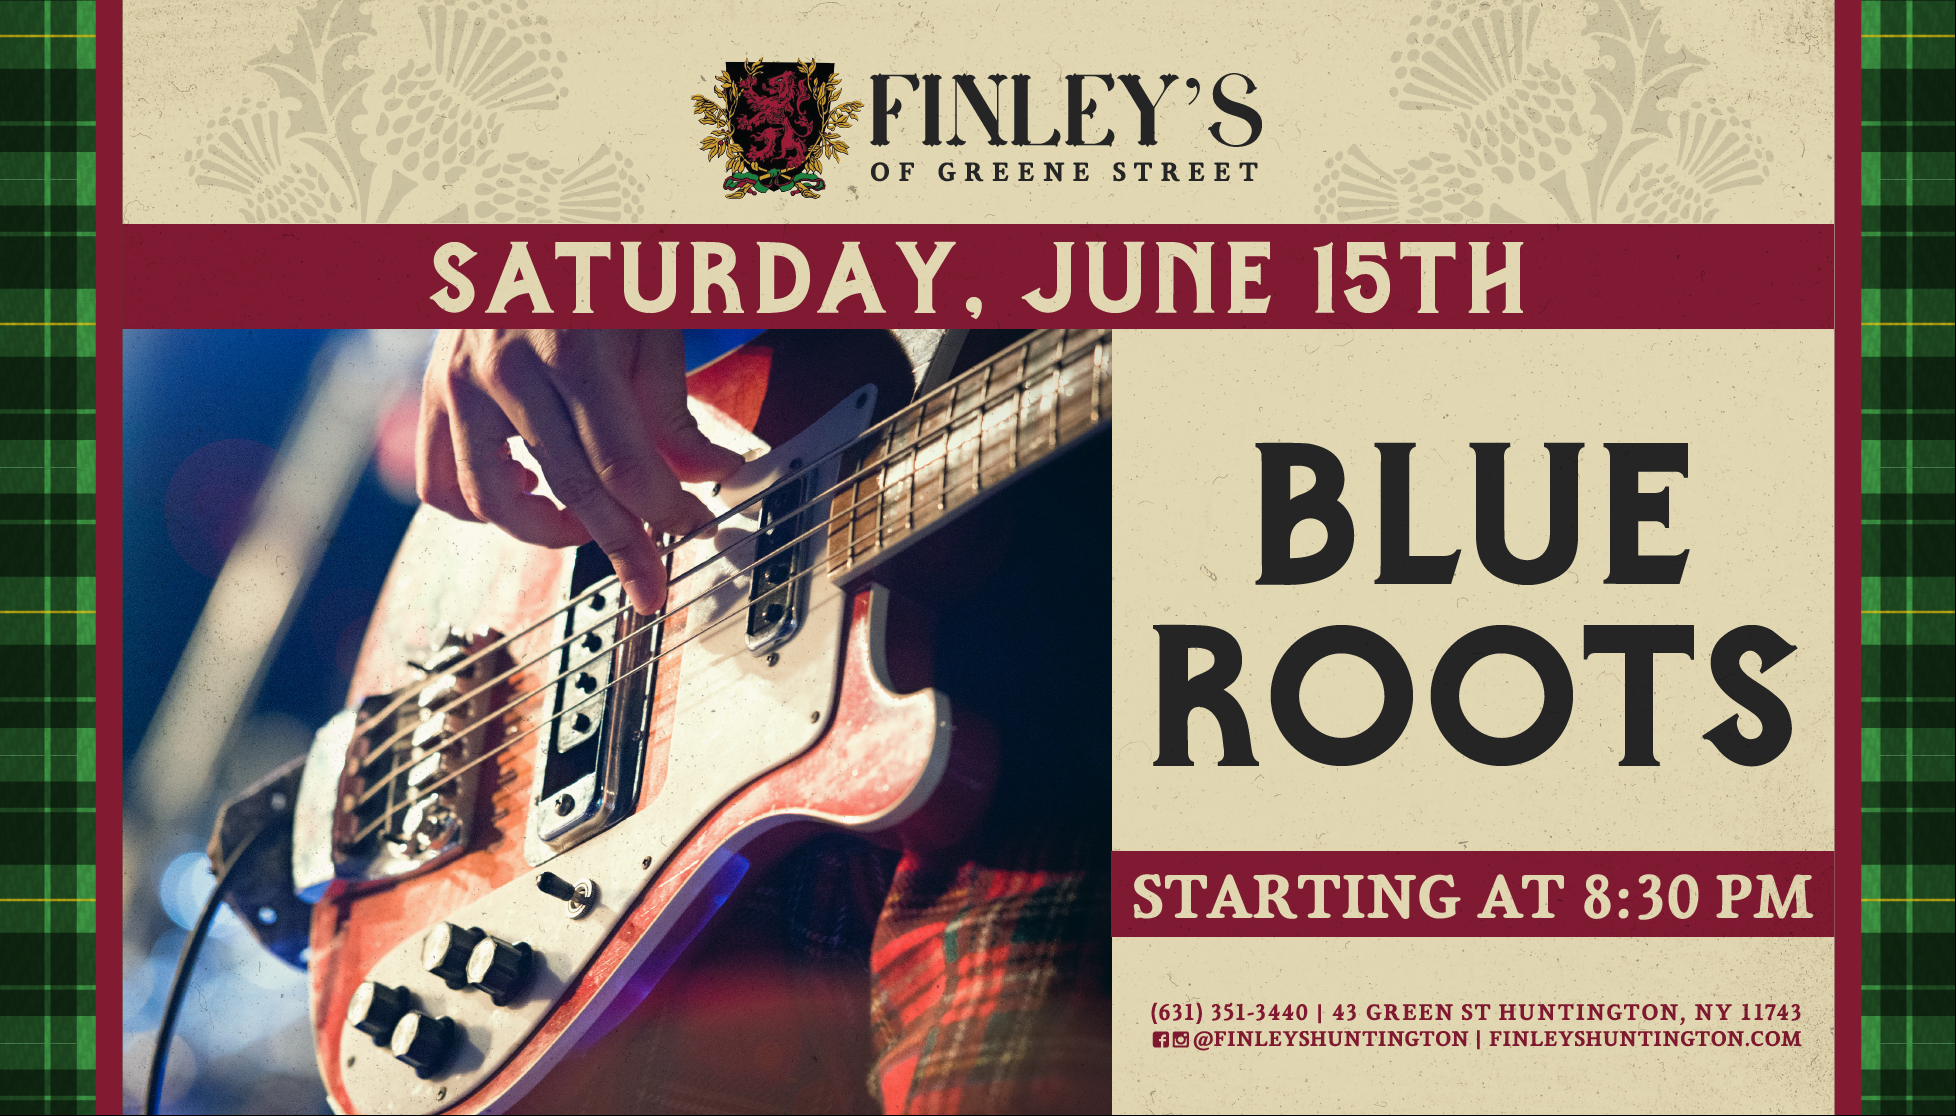 Flyer for live music with Blue Roots starting at 8:30pm on June 15th.